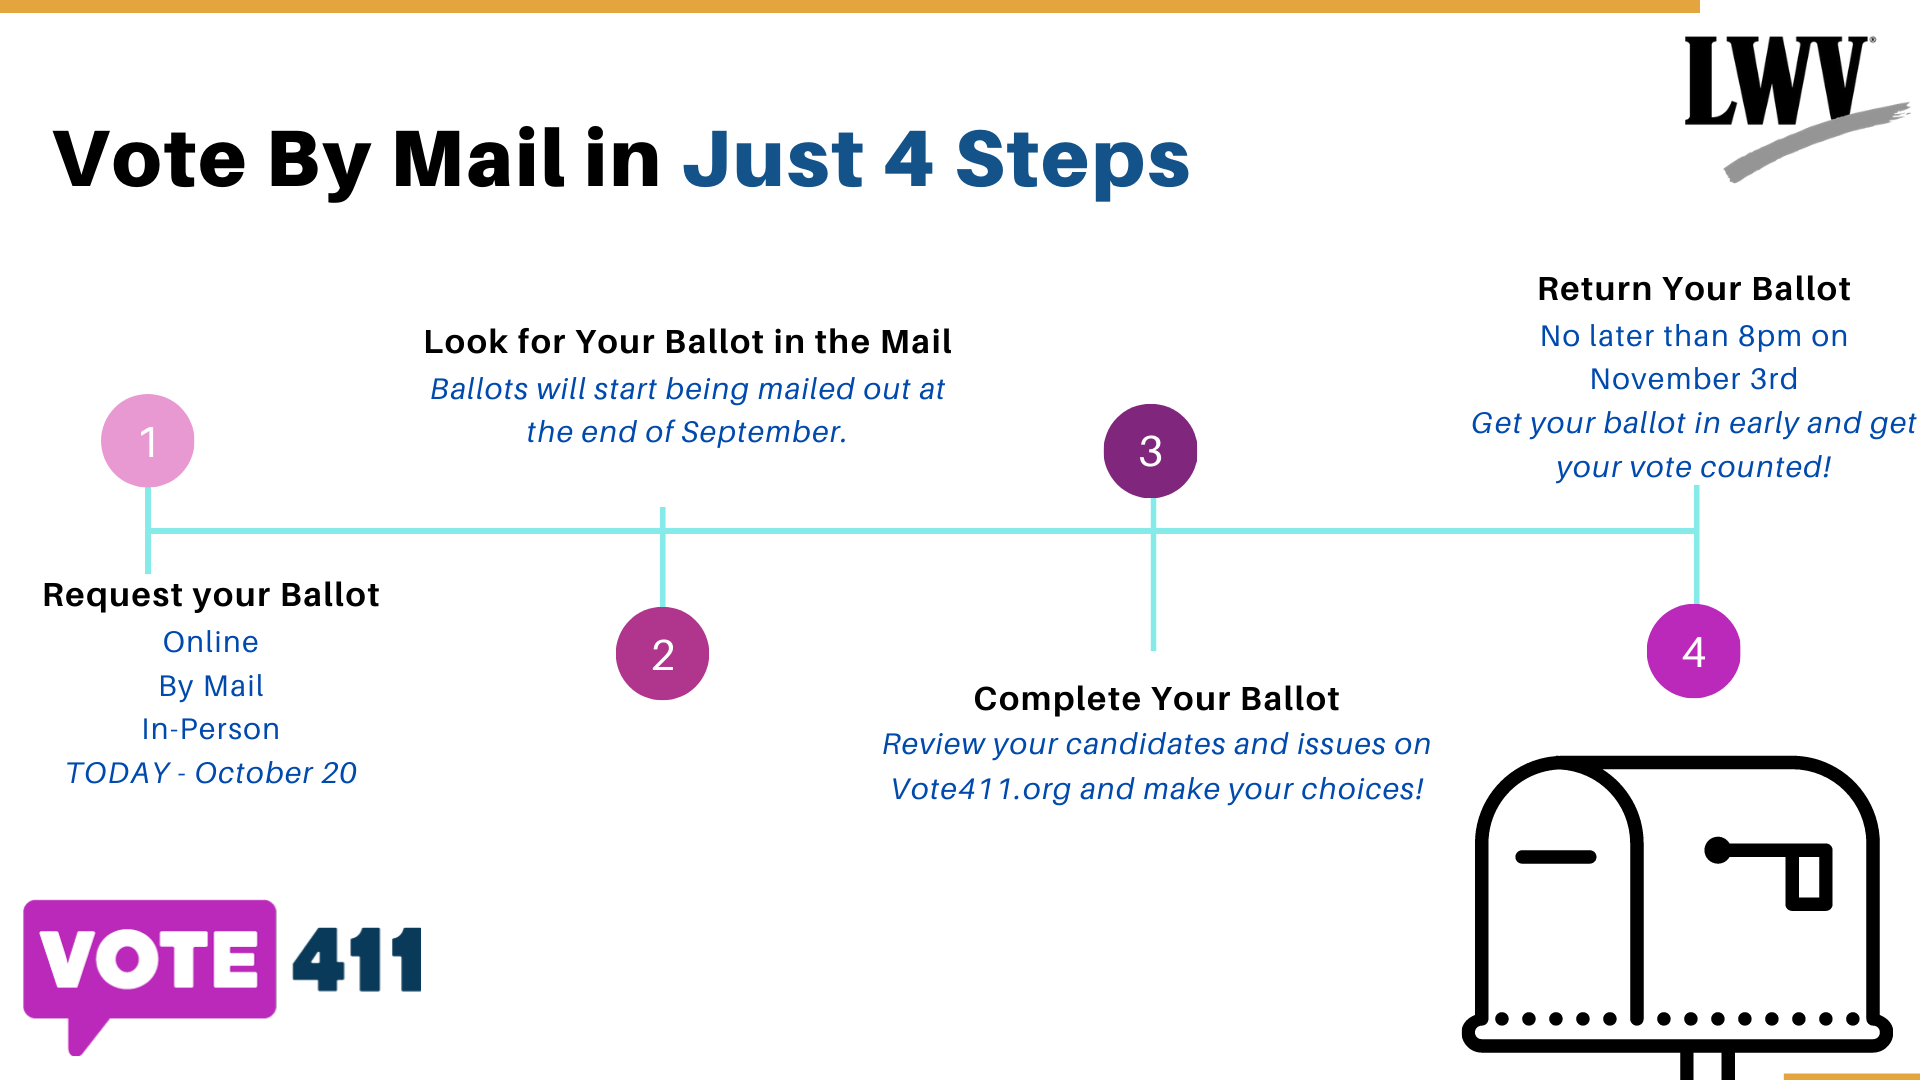 Vote By Mail in Just 4 Steps Graphic - Info also in text below